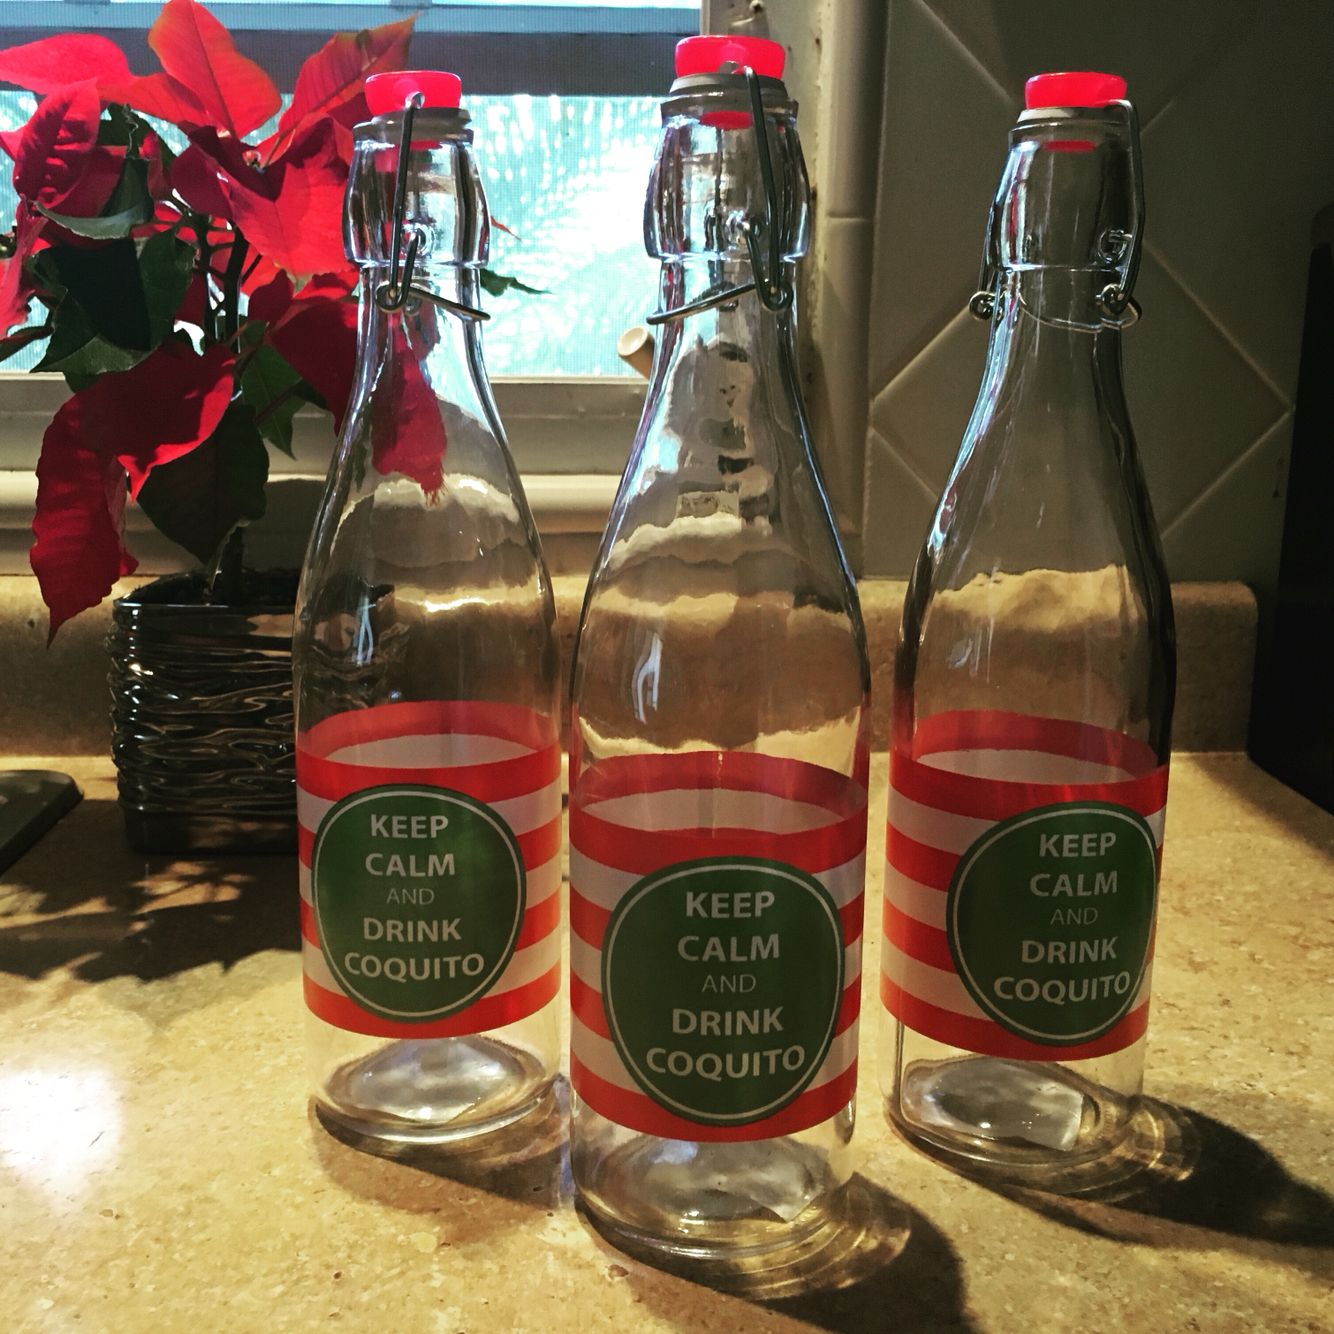 Coquito bottles coquito bottles pinterest bottle and for Decor drink bottle